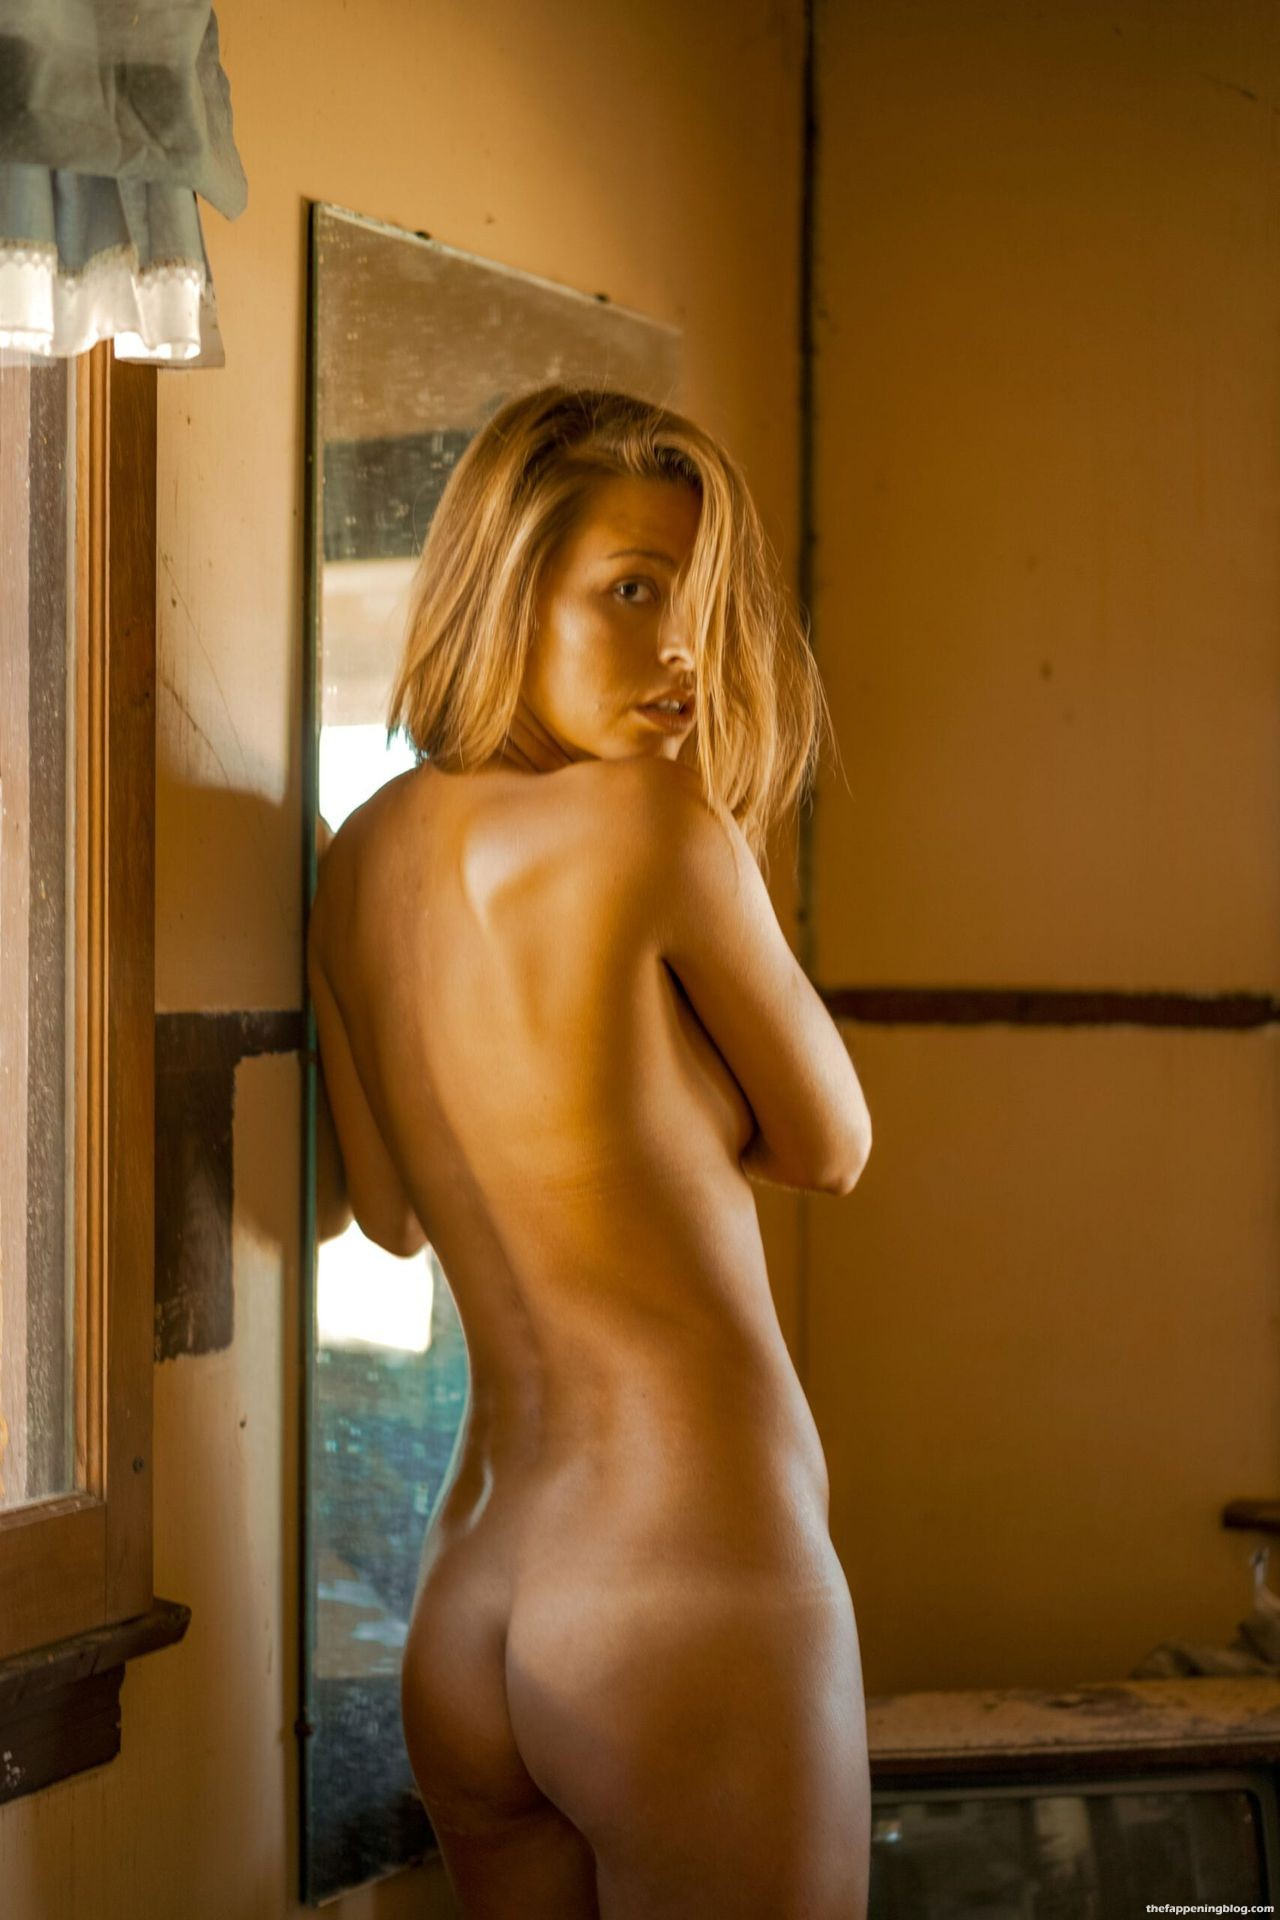 Marisa-Papen-Stunning-Naked-Body-13-scaled1-thefappeningblog.com_.jpg